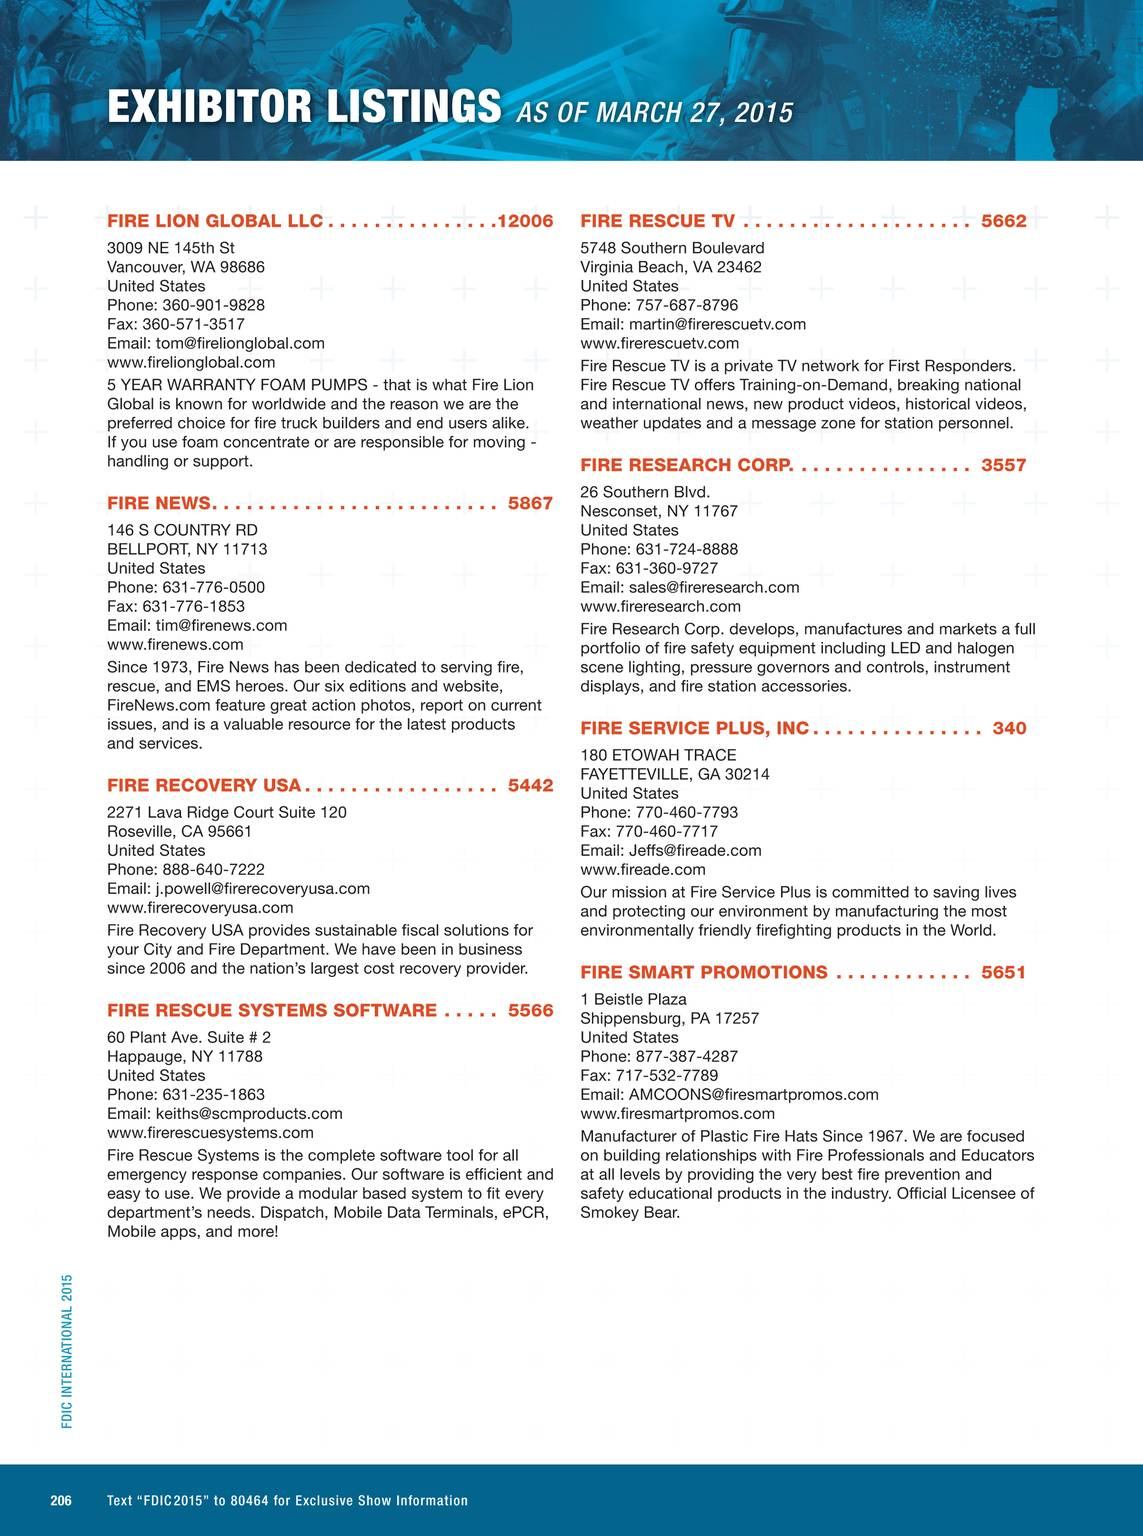 Pennwell Supplements - FDIC 2015 Event Guide - page 207